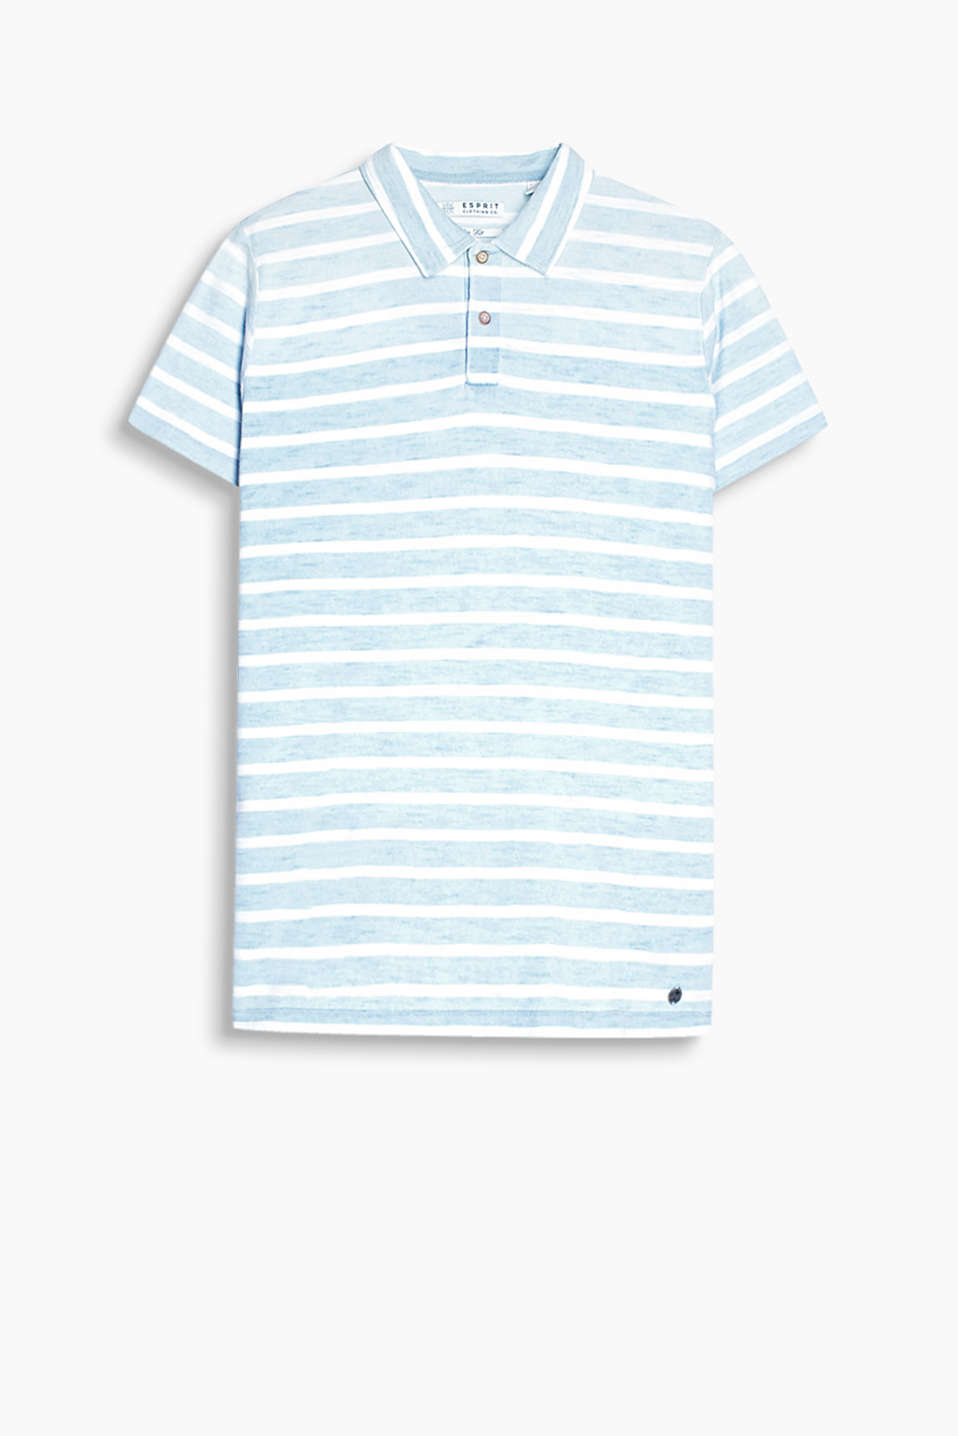 With a nautical striped pattern: polo shirt in a fine knit look